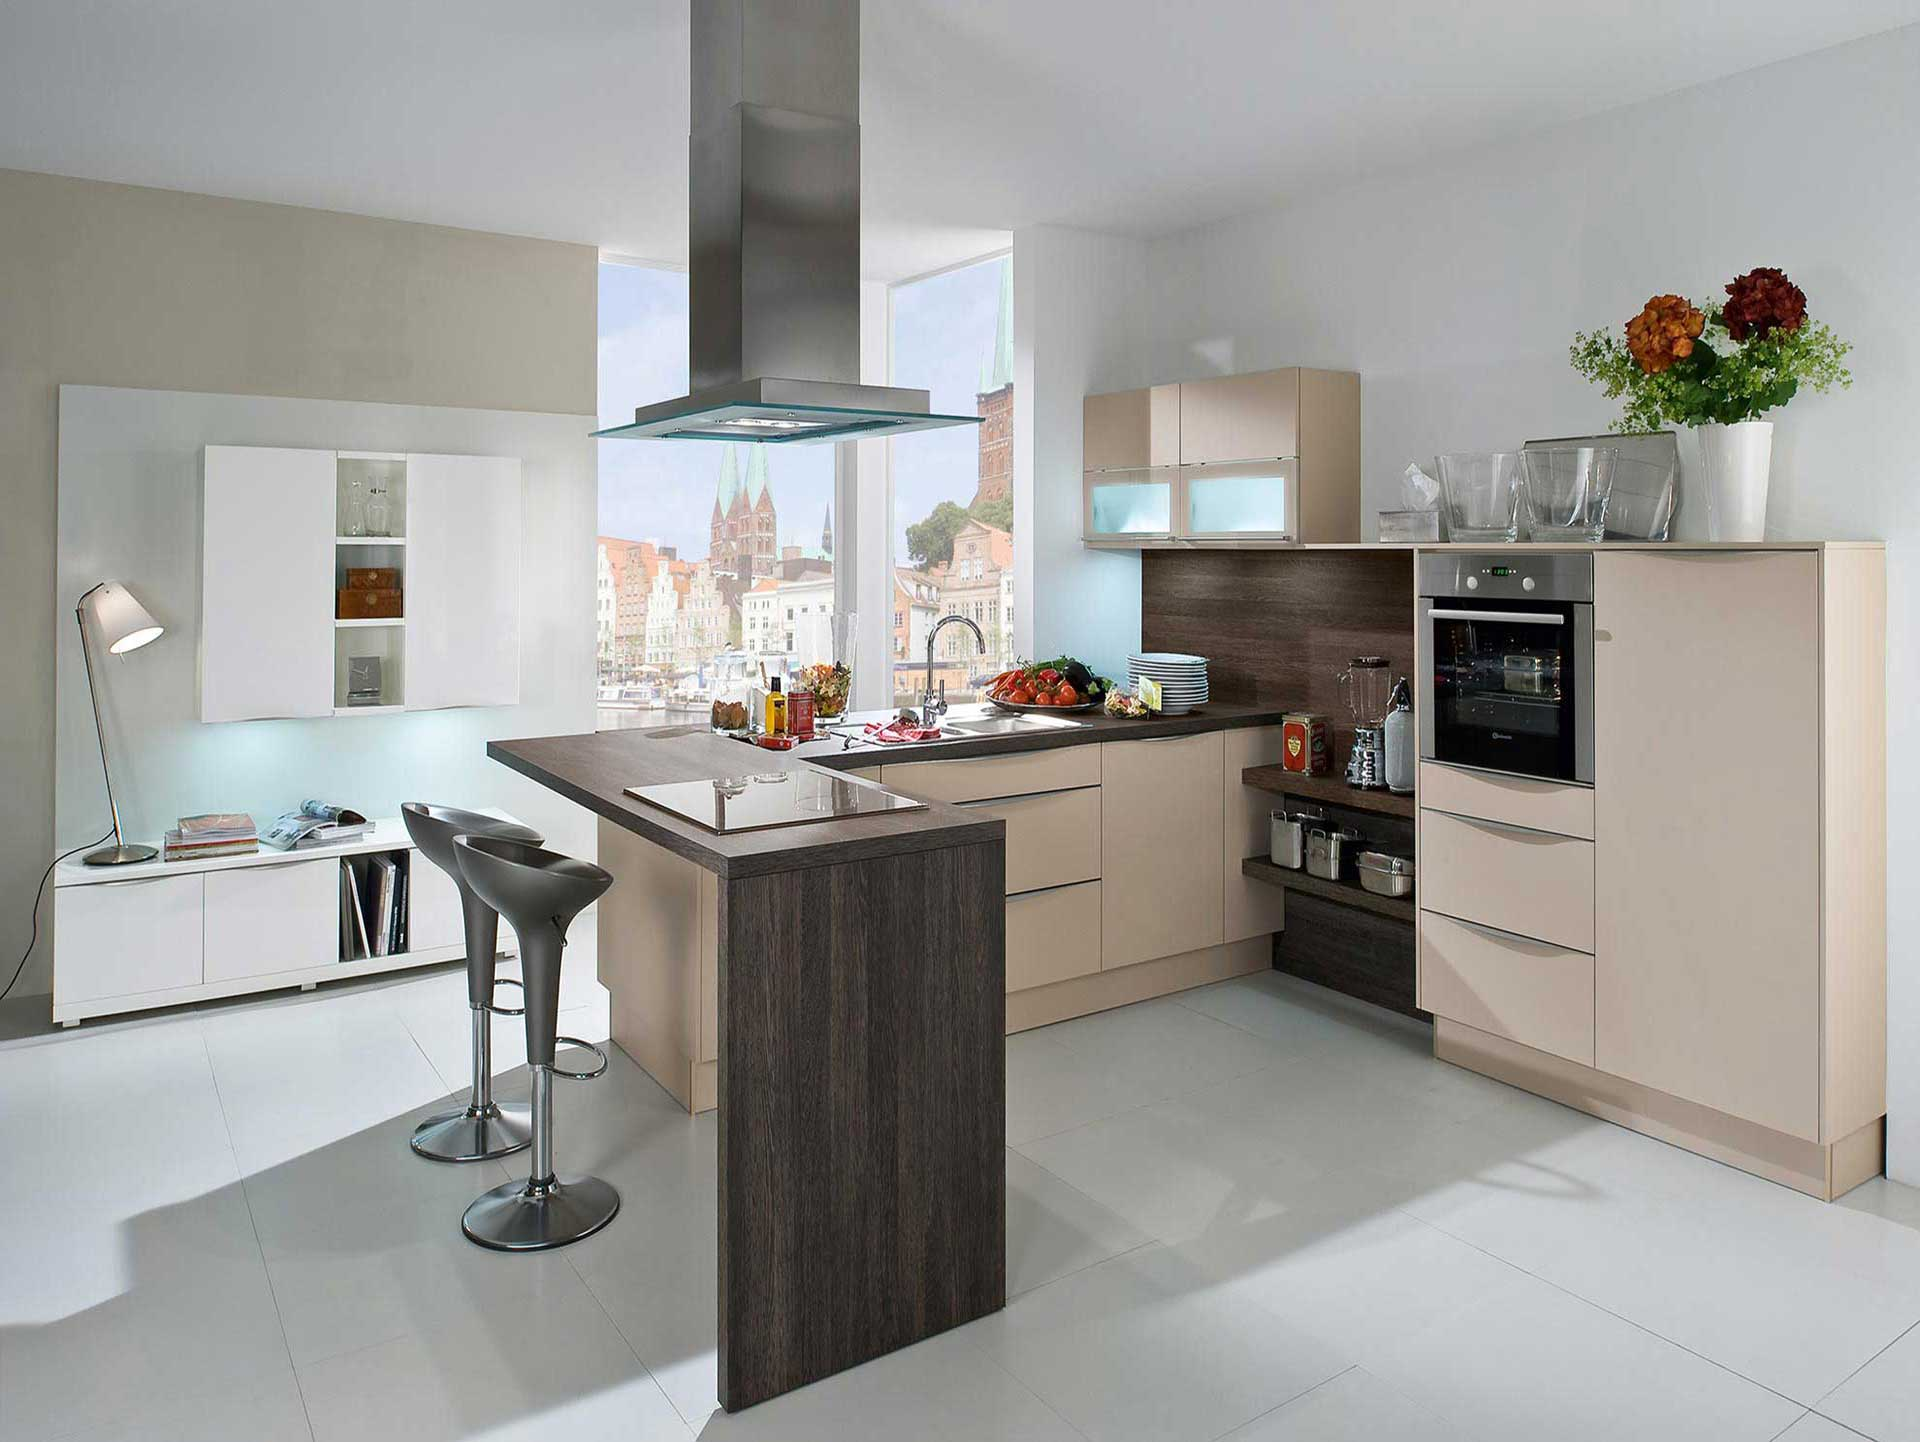 Low cost kitchens in Whitefield and Prestwich